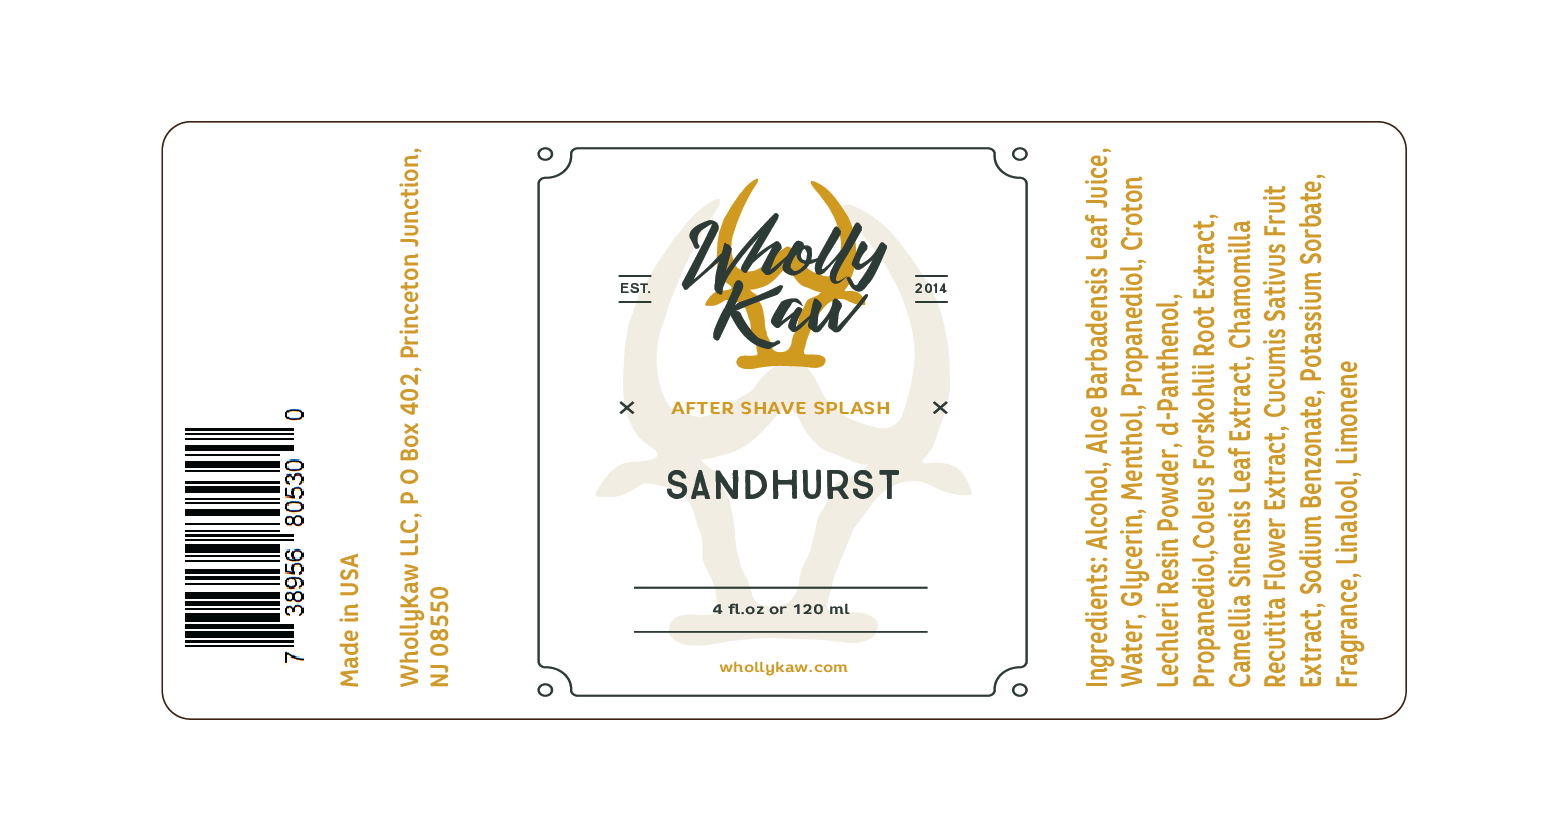 Wholly Kaw - Sandhurst - Aftershave image